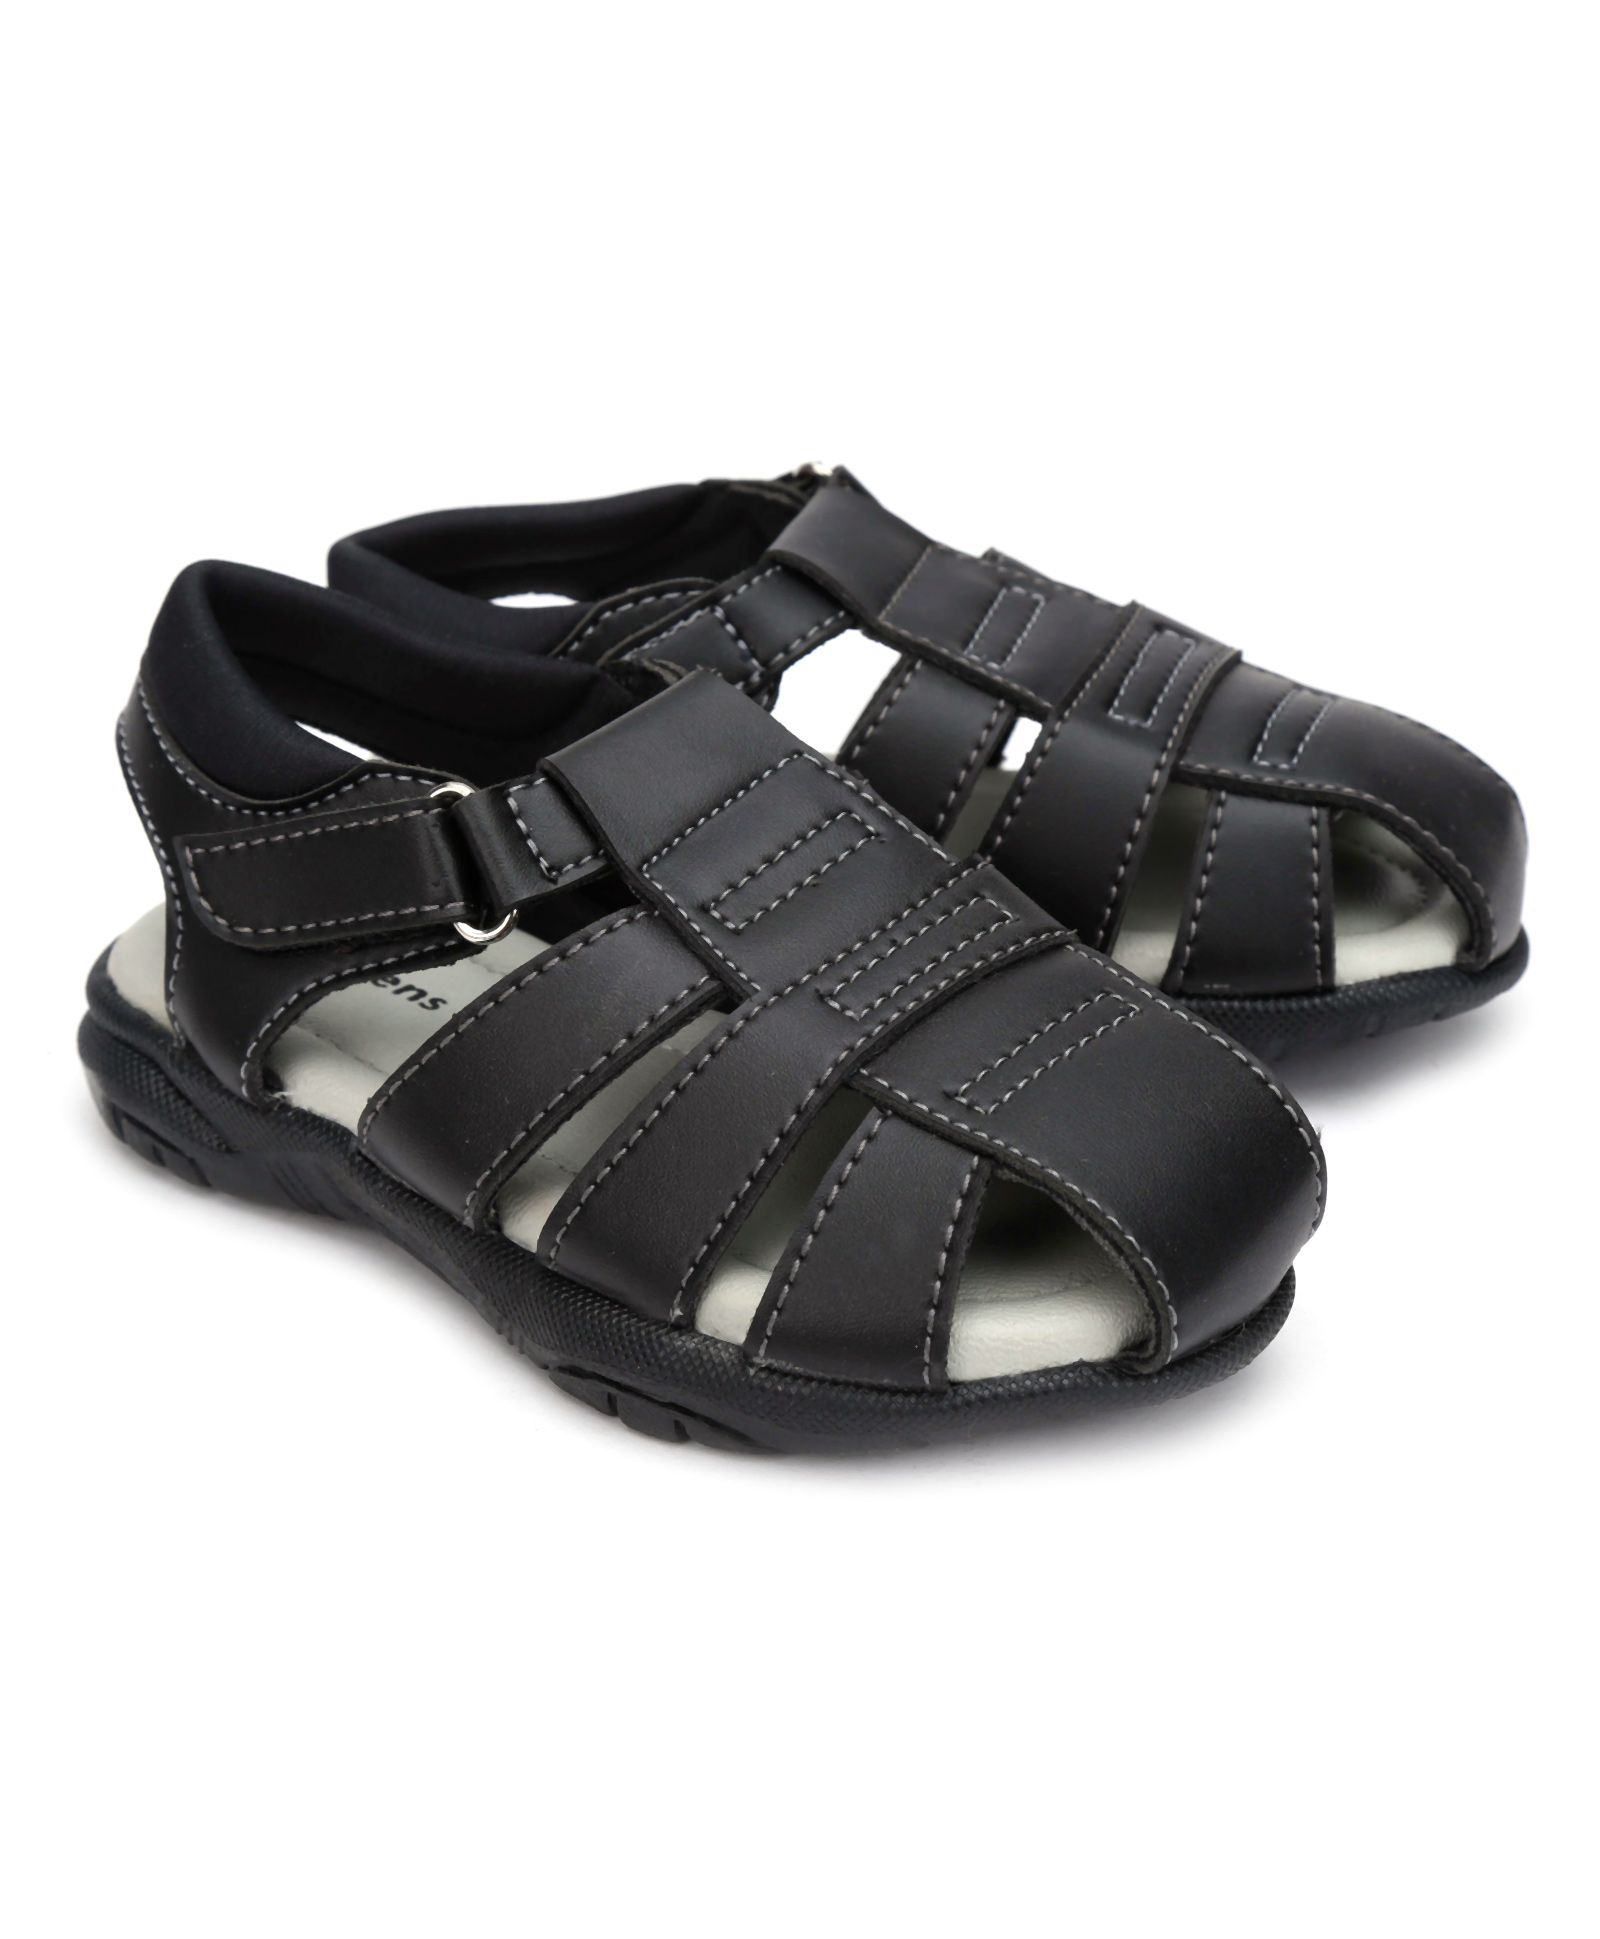 Big Fun For Little Feet!! Min 40-70% Off On Kids Footwear By Firstcry | Kittens Casual Sandals Velcro Closure - Black @ Rs.501.20